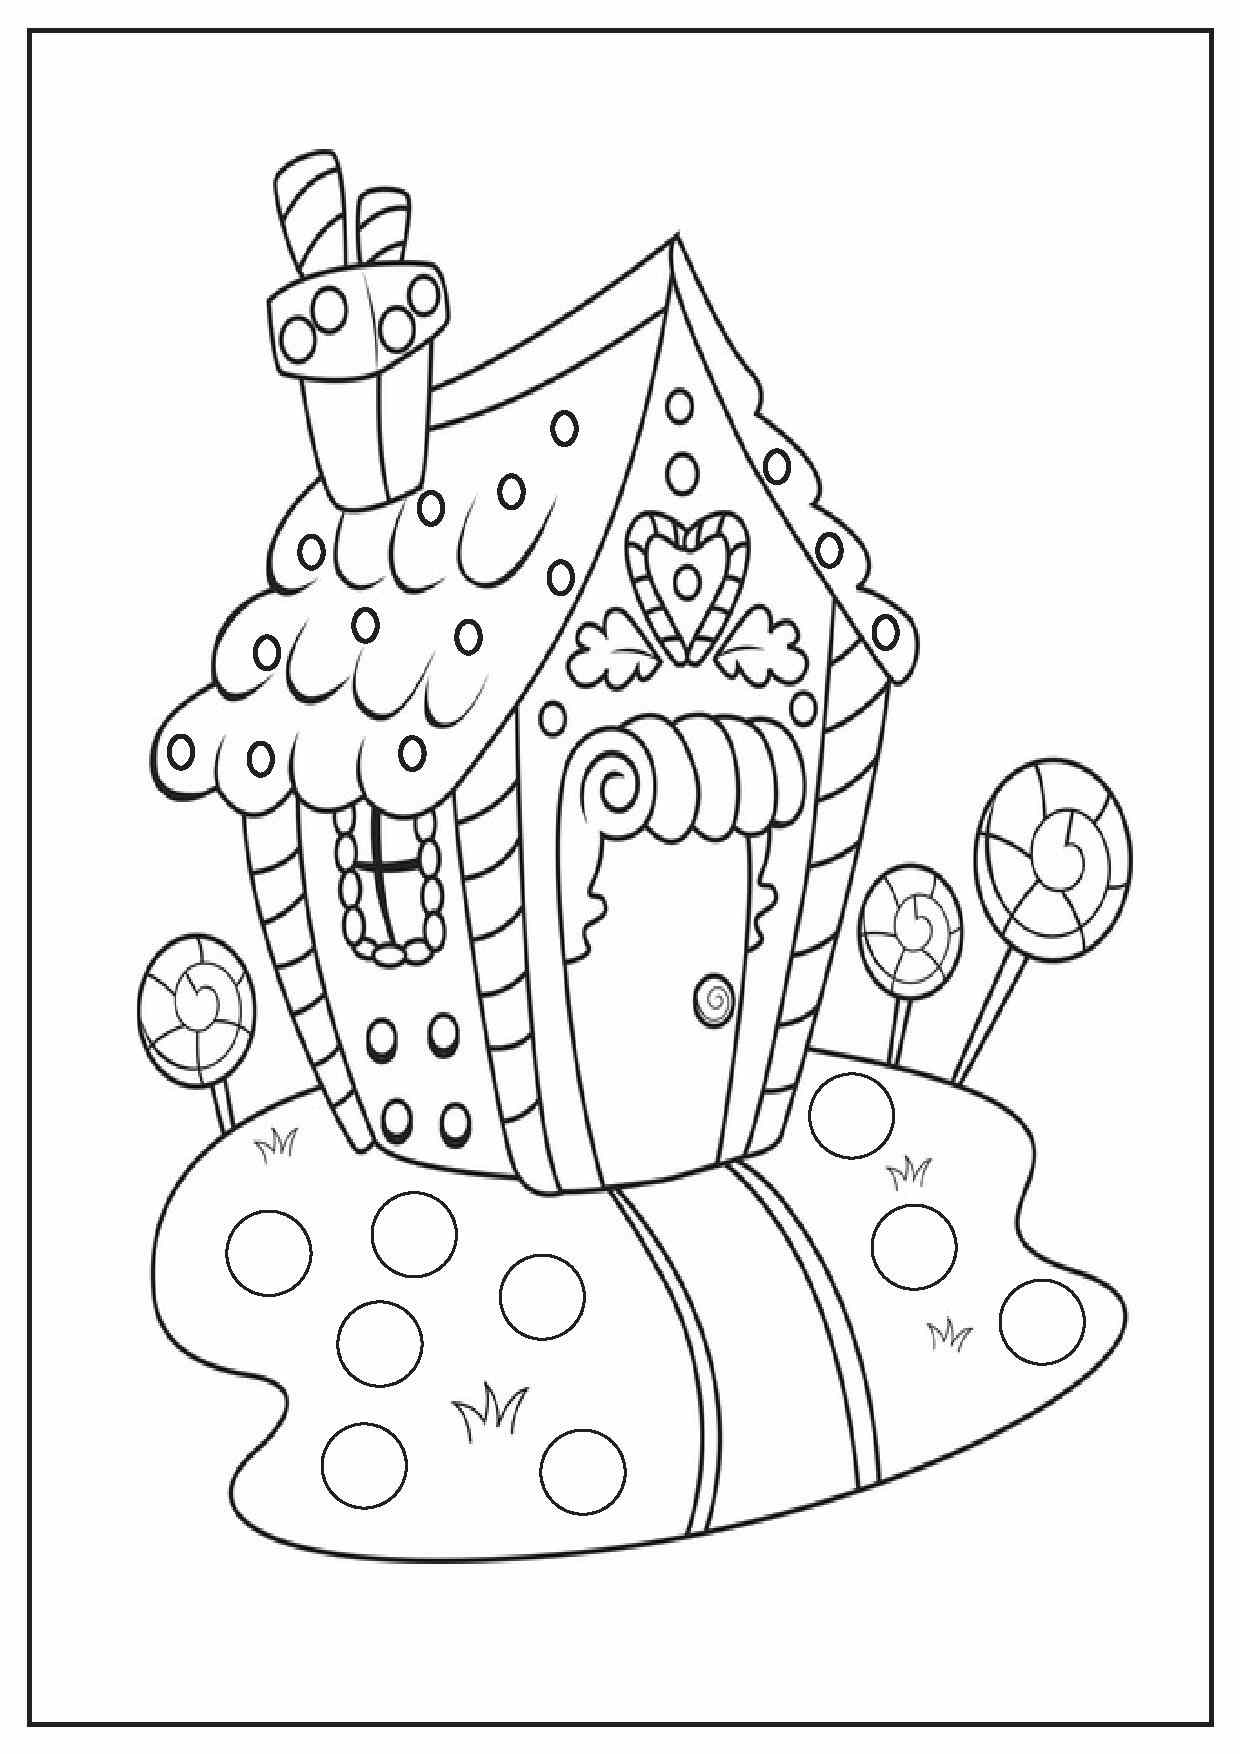 free holiday coloring pages christmas coloring pages printable holiday free pages coloring